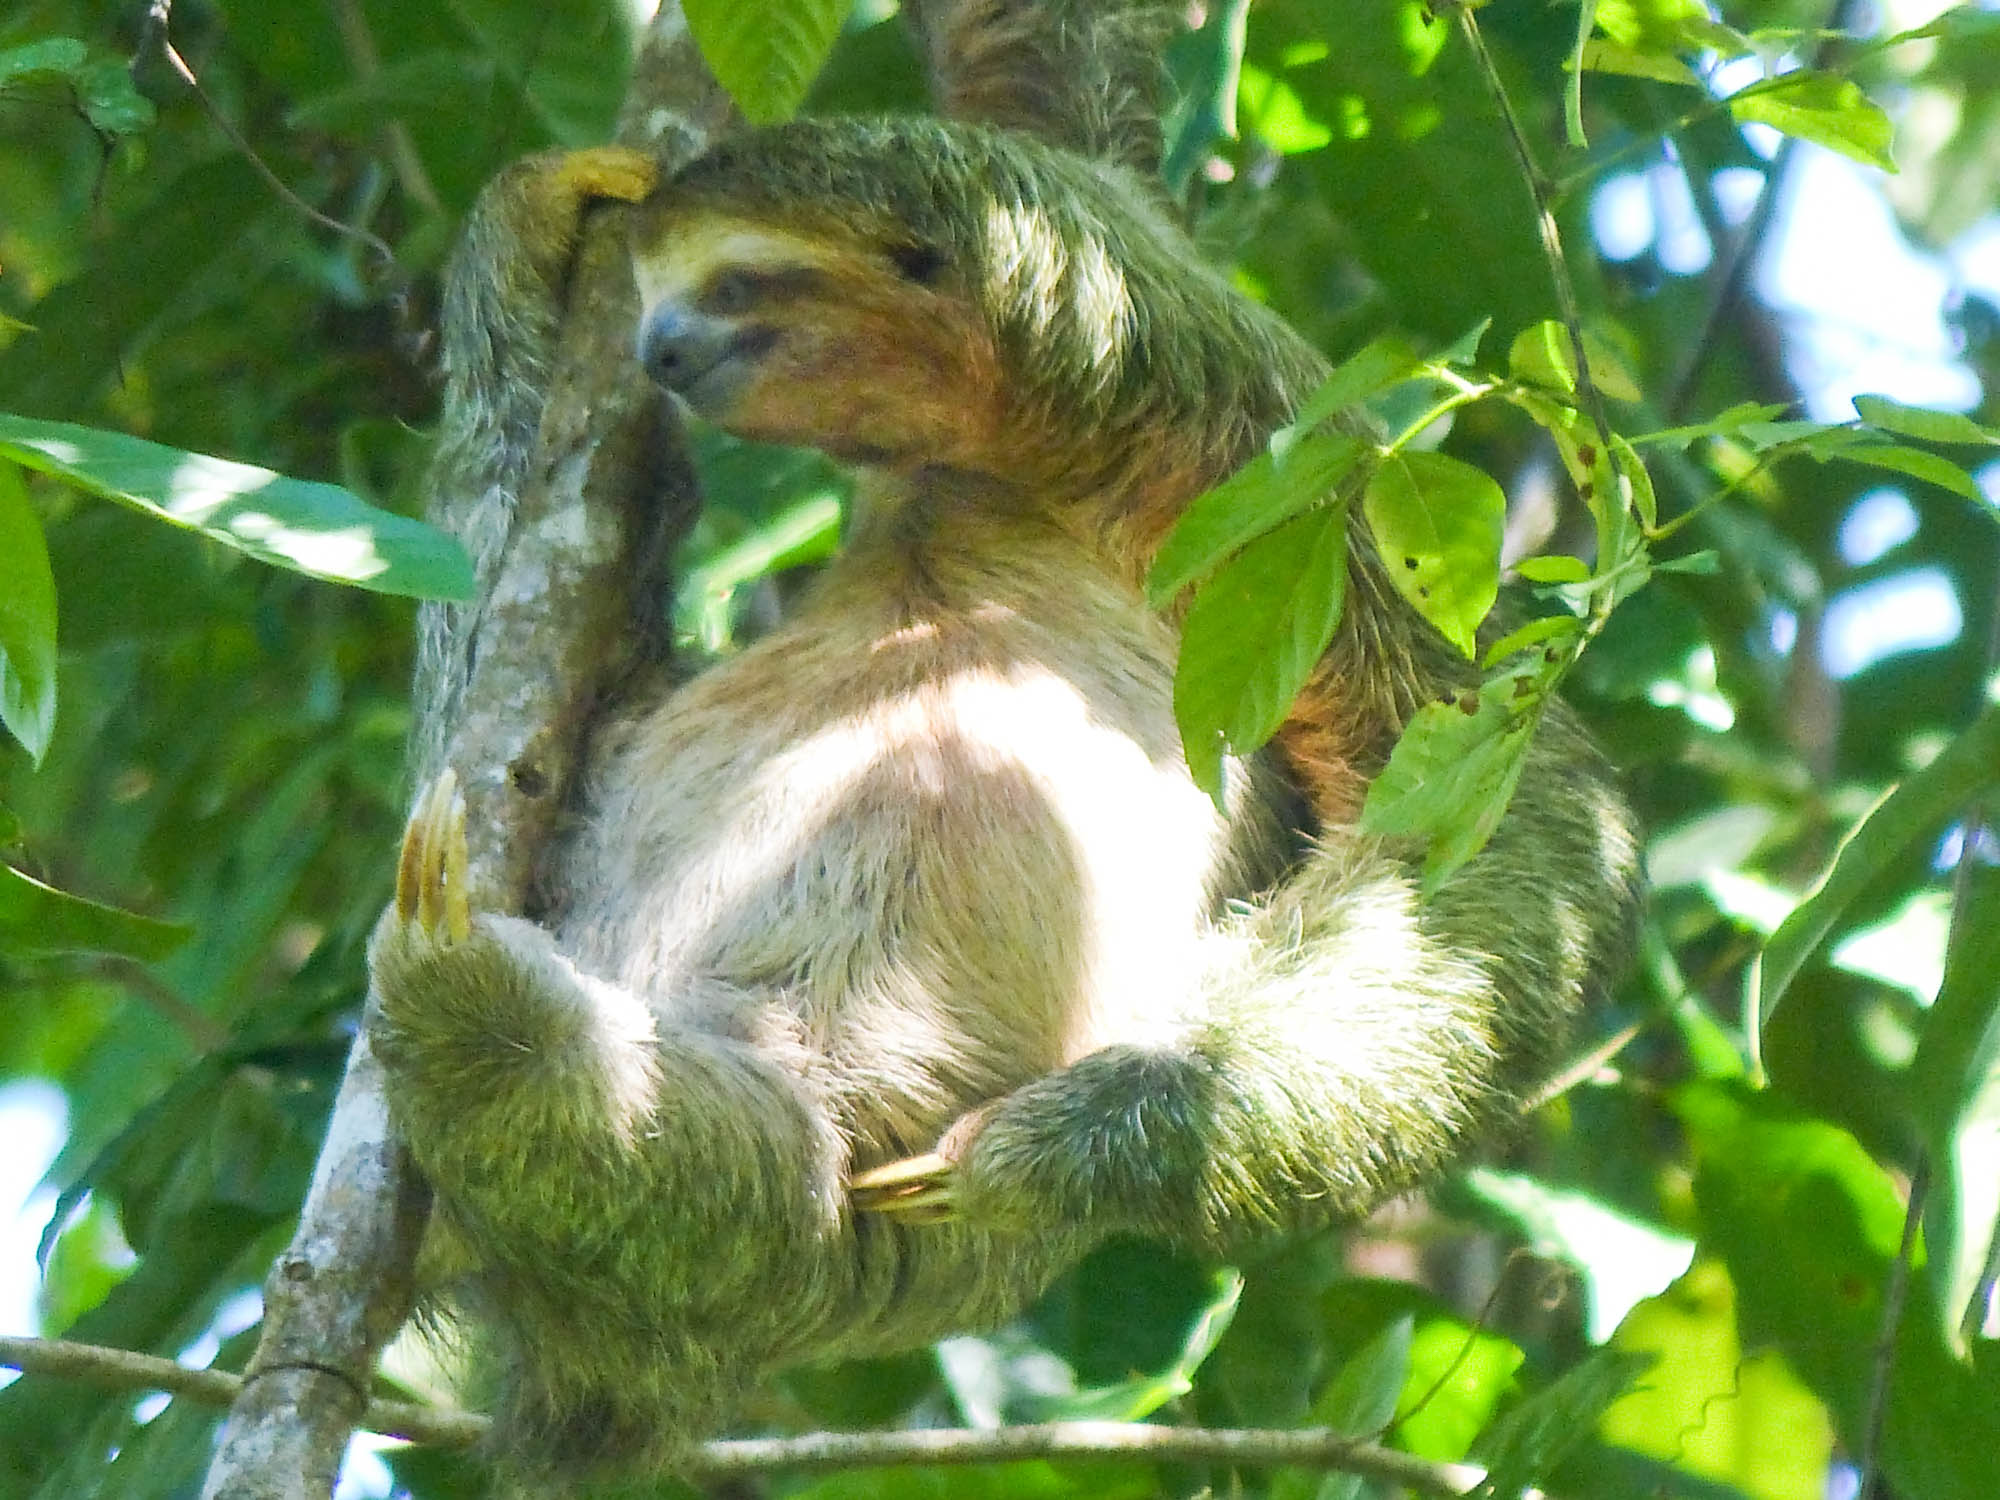 Three-toed sloth high up in the tree